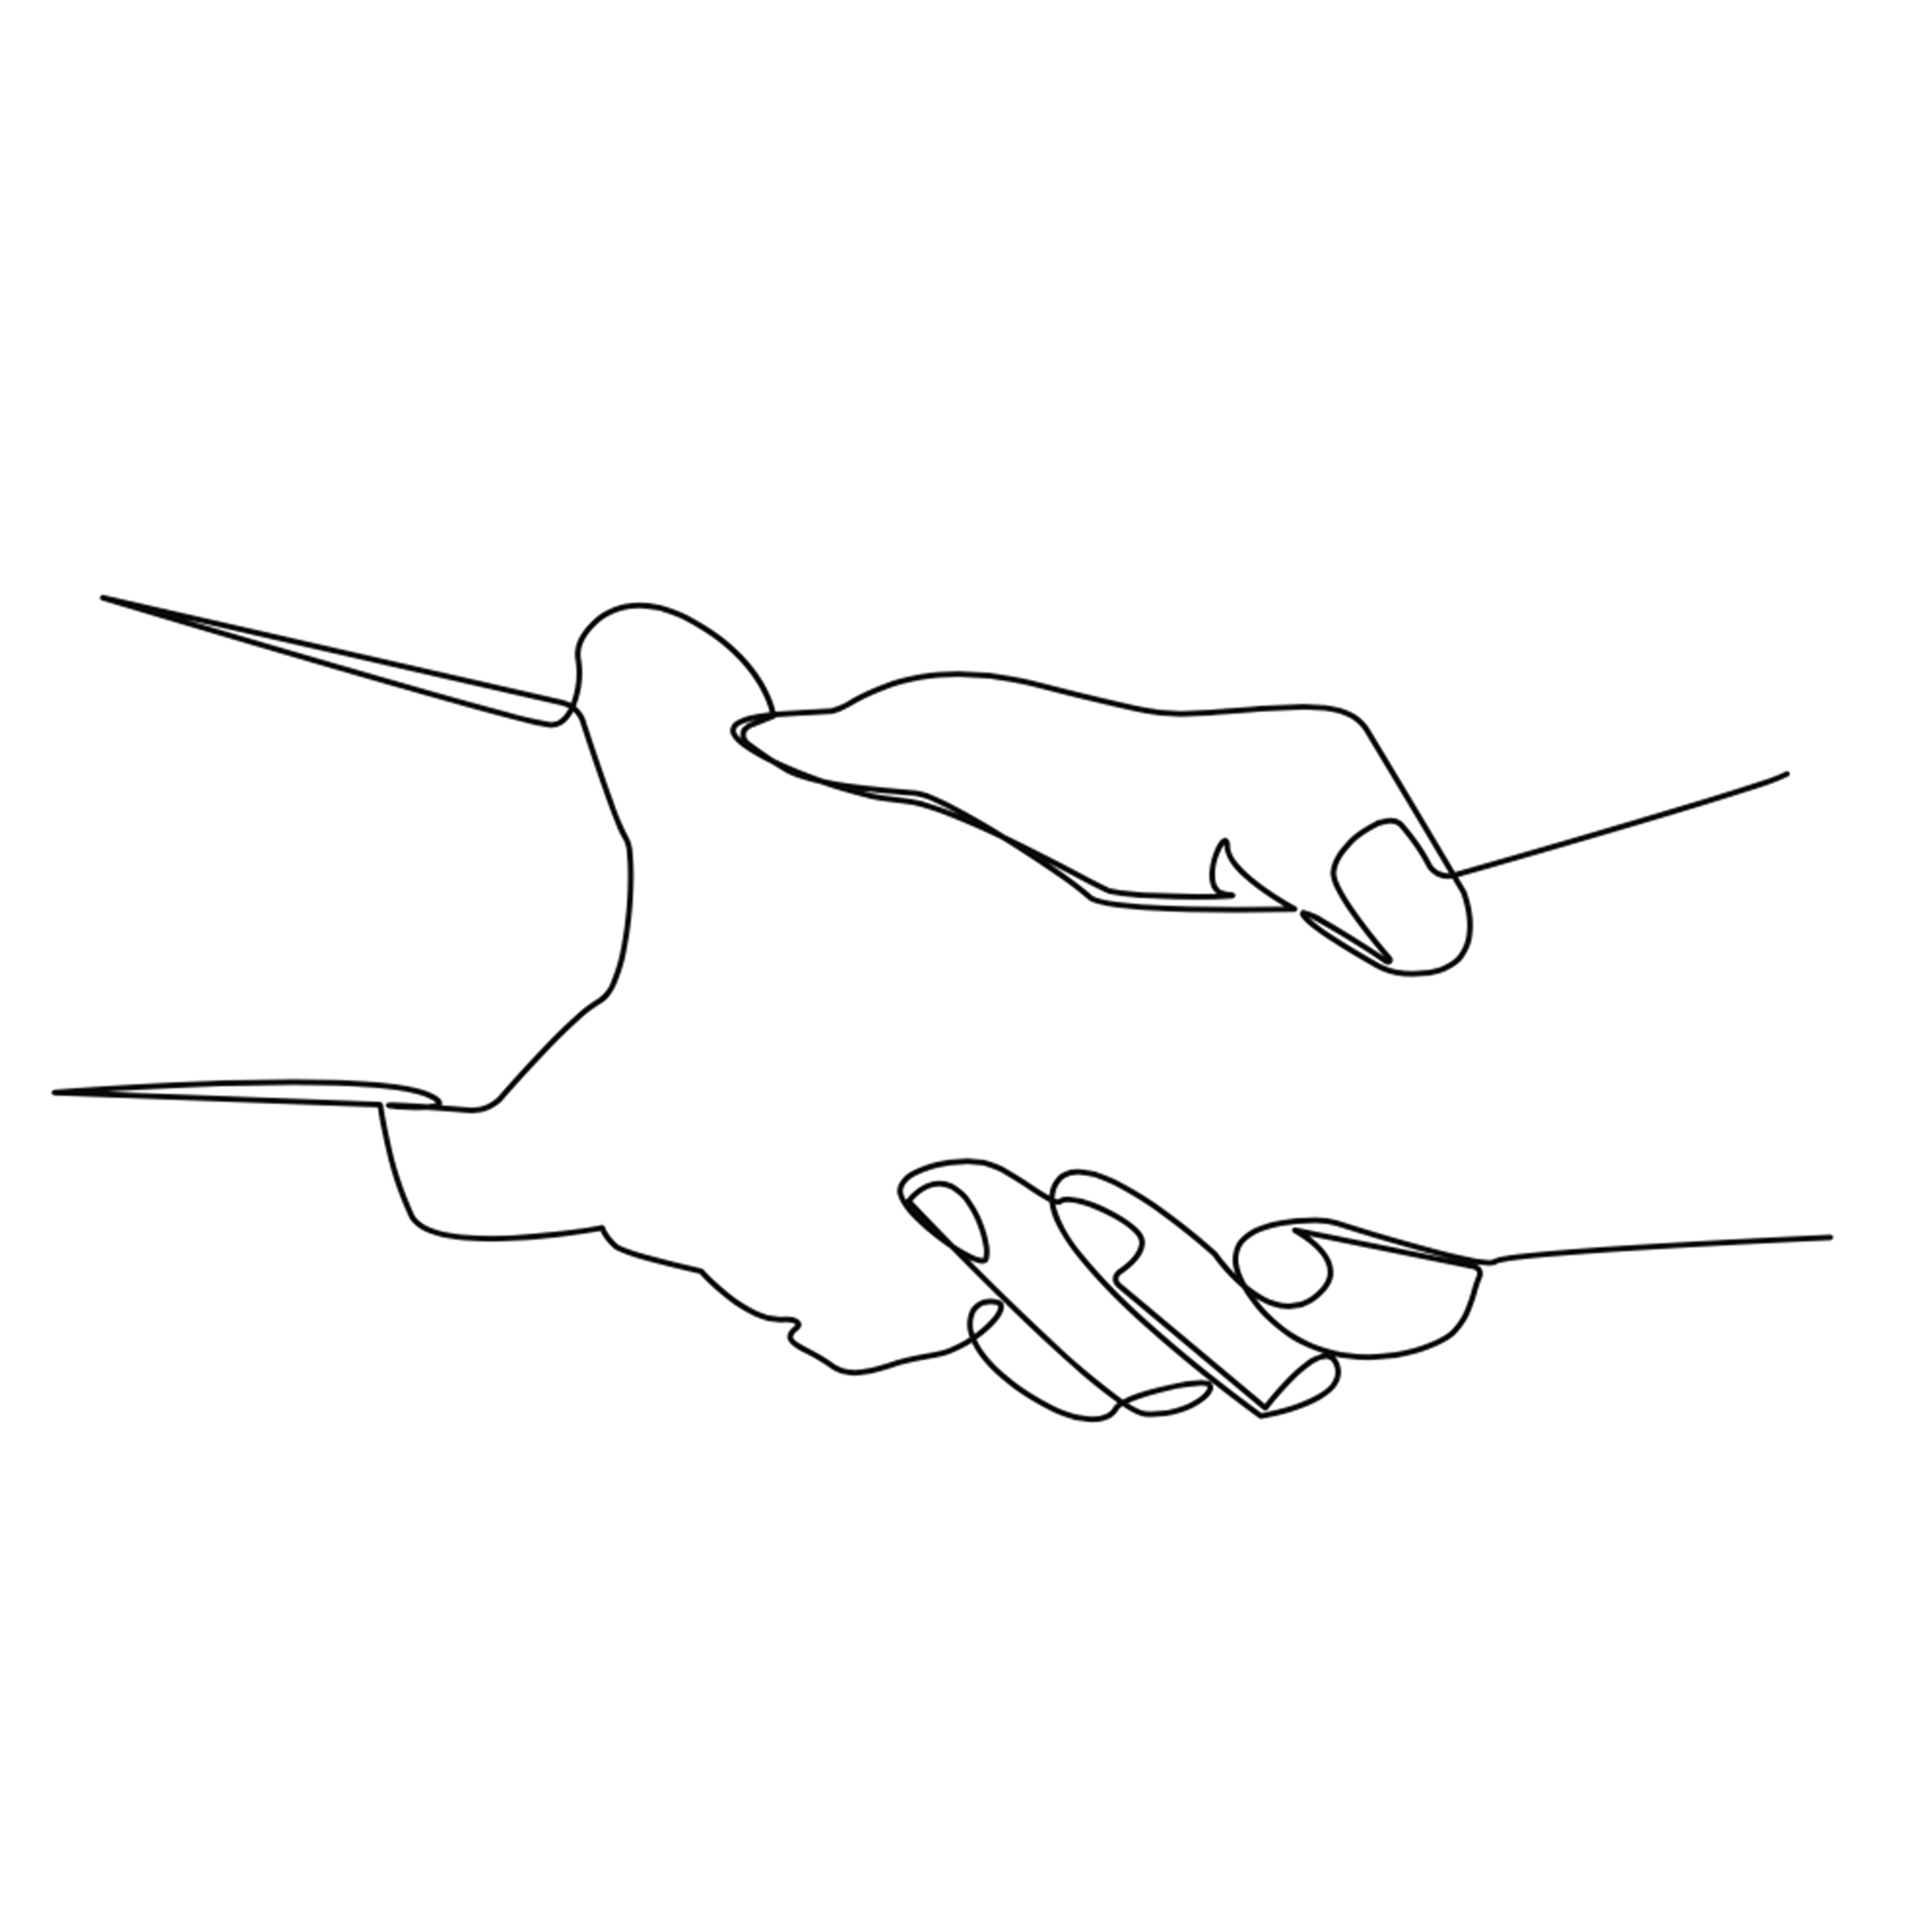 Two hands supporting each other